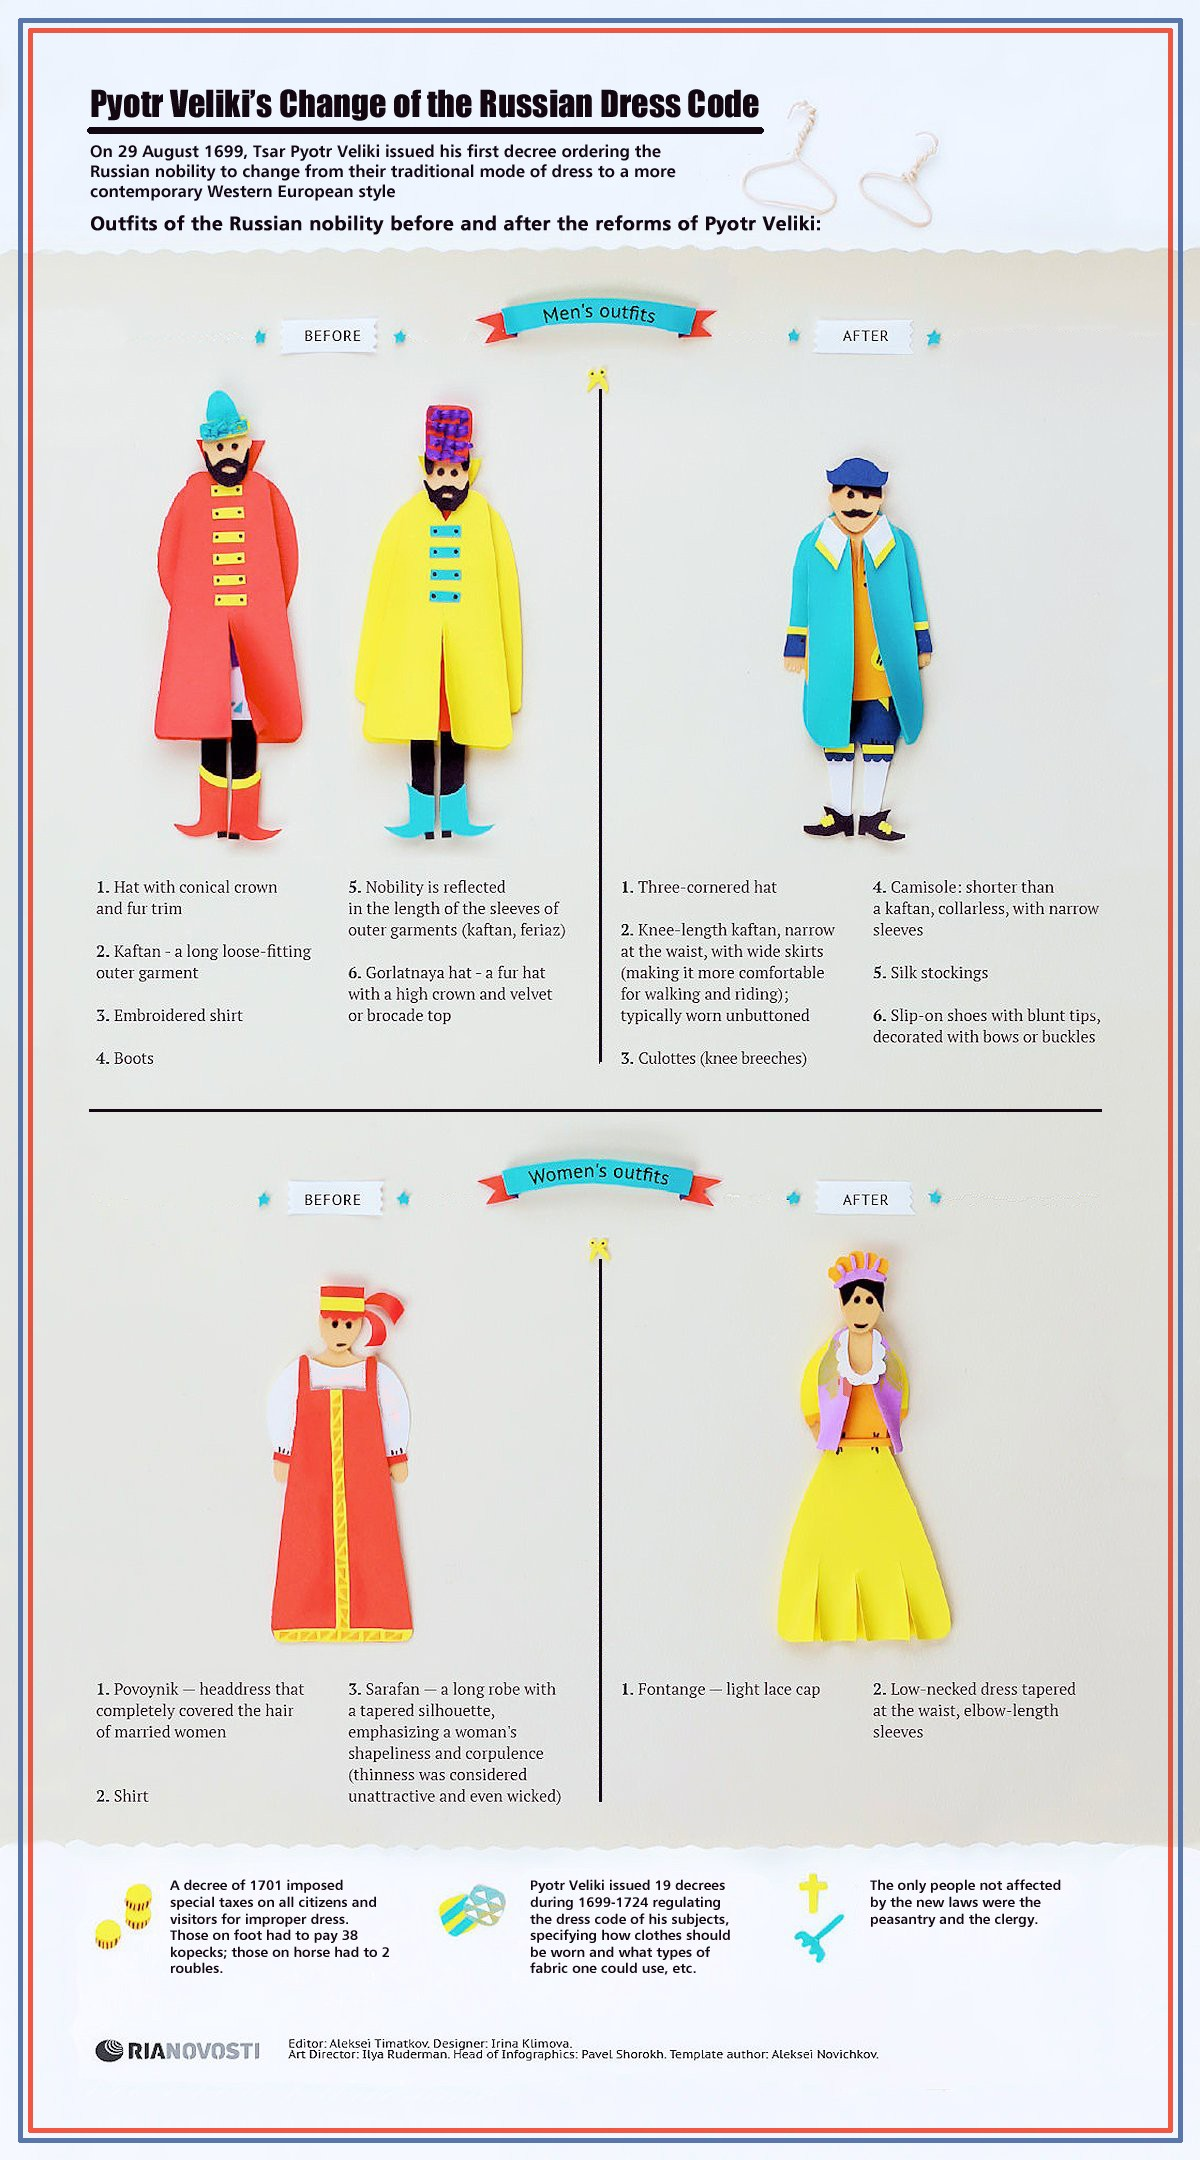 00 RIA-Novosti Infographics. Pyotr Veliki's Change of the Russian Dress Code. 2013